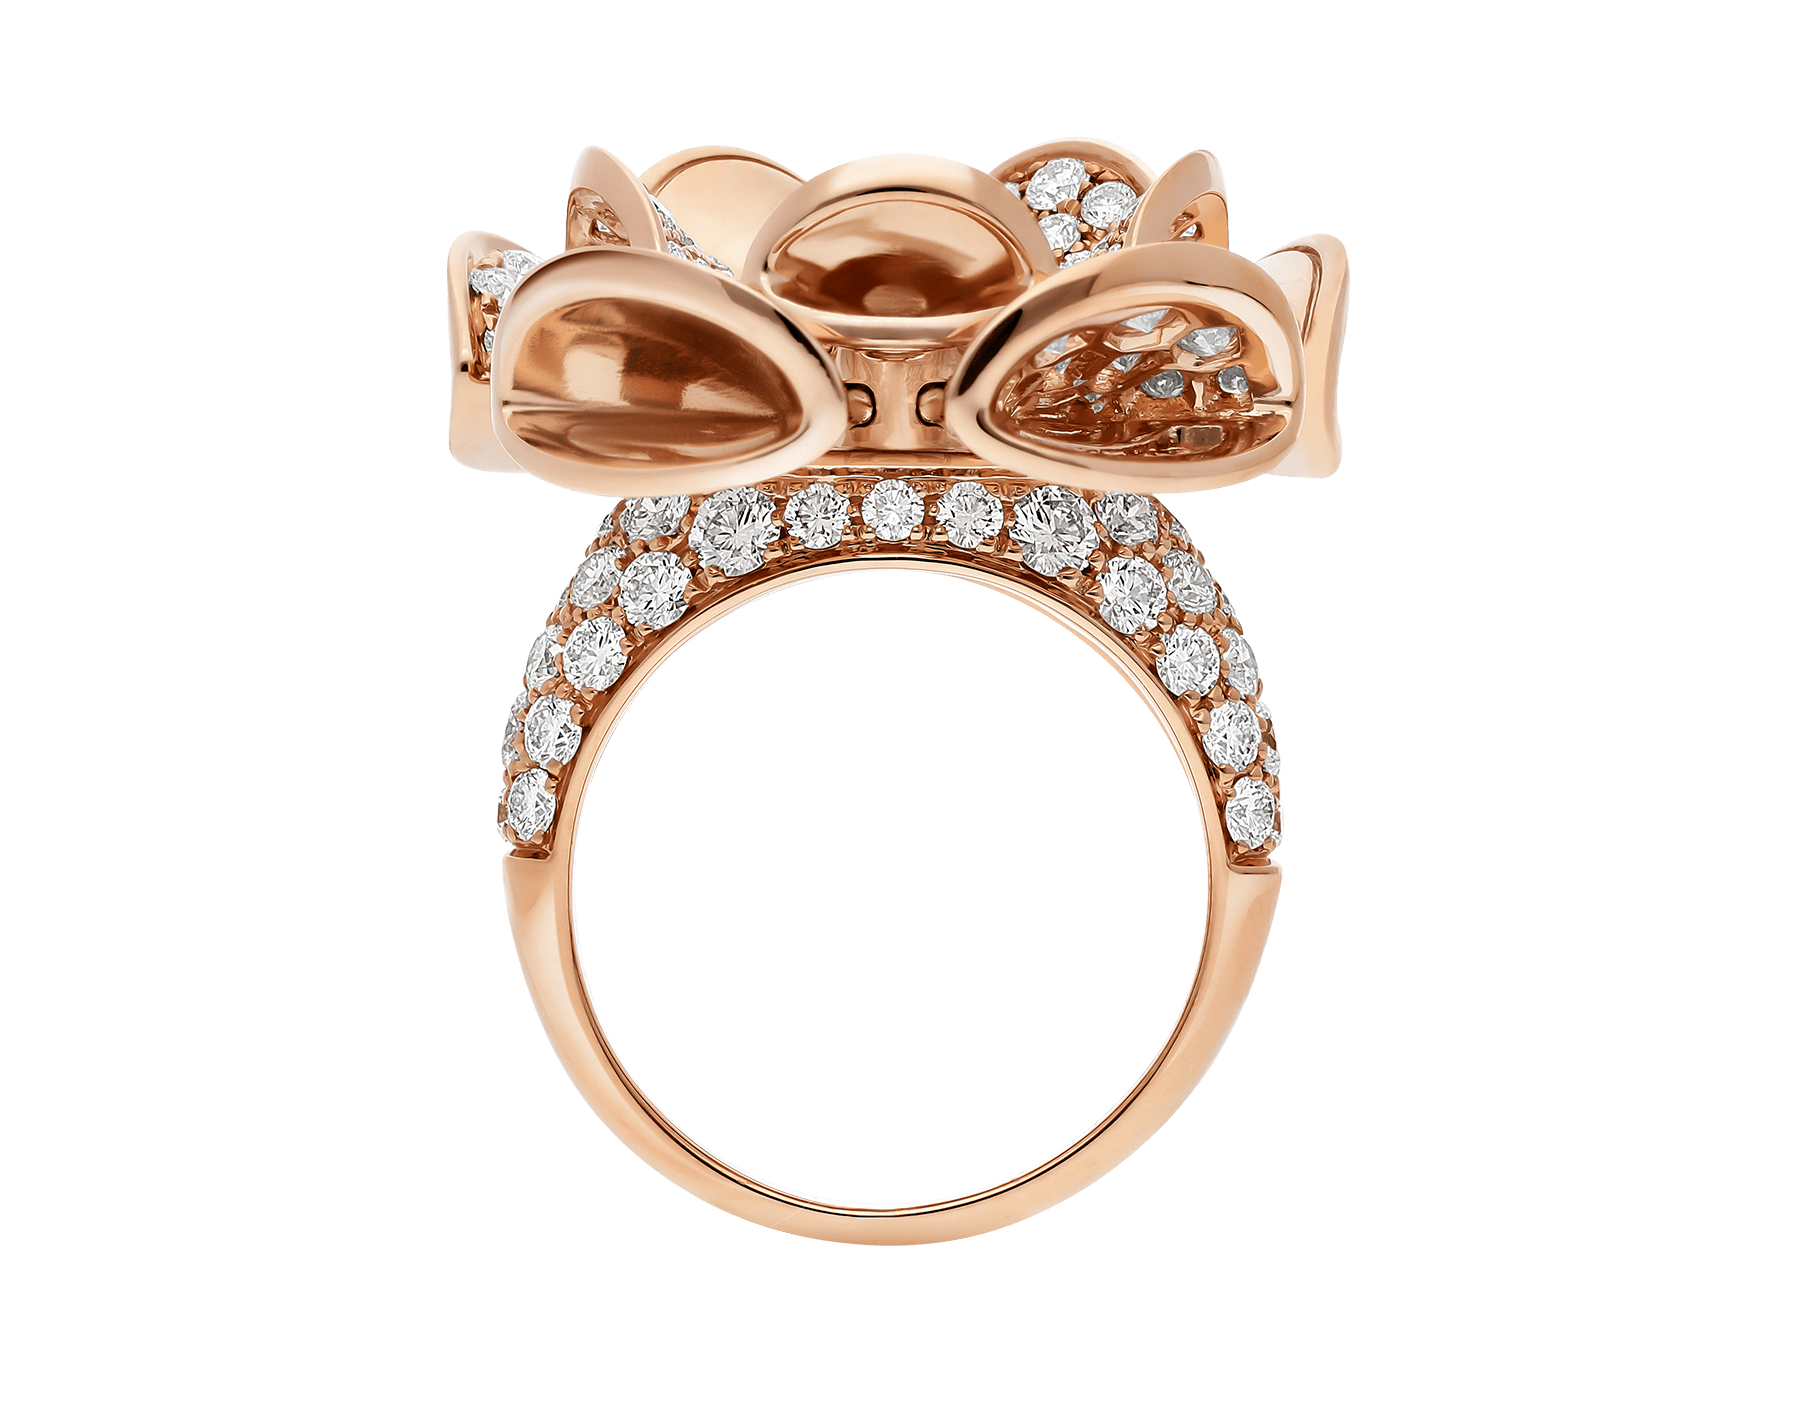 DIVAS' DREAM ring in 18 kt rose gold, set with central diamond and pavé diamonds. AN856354 image 2